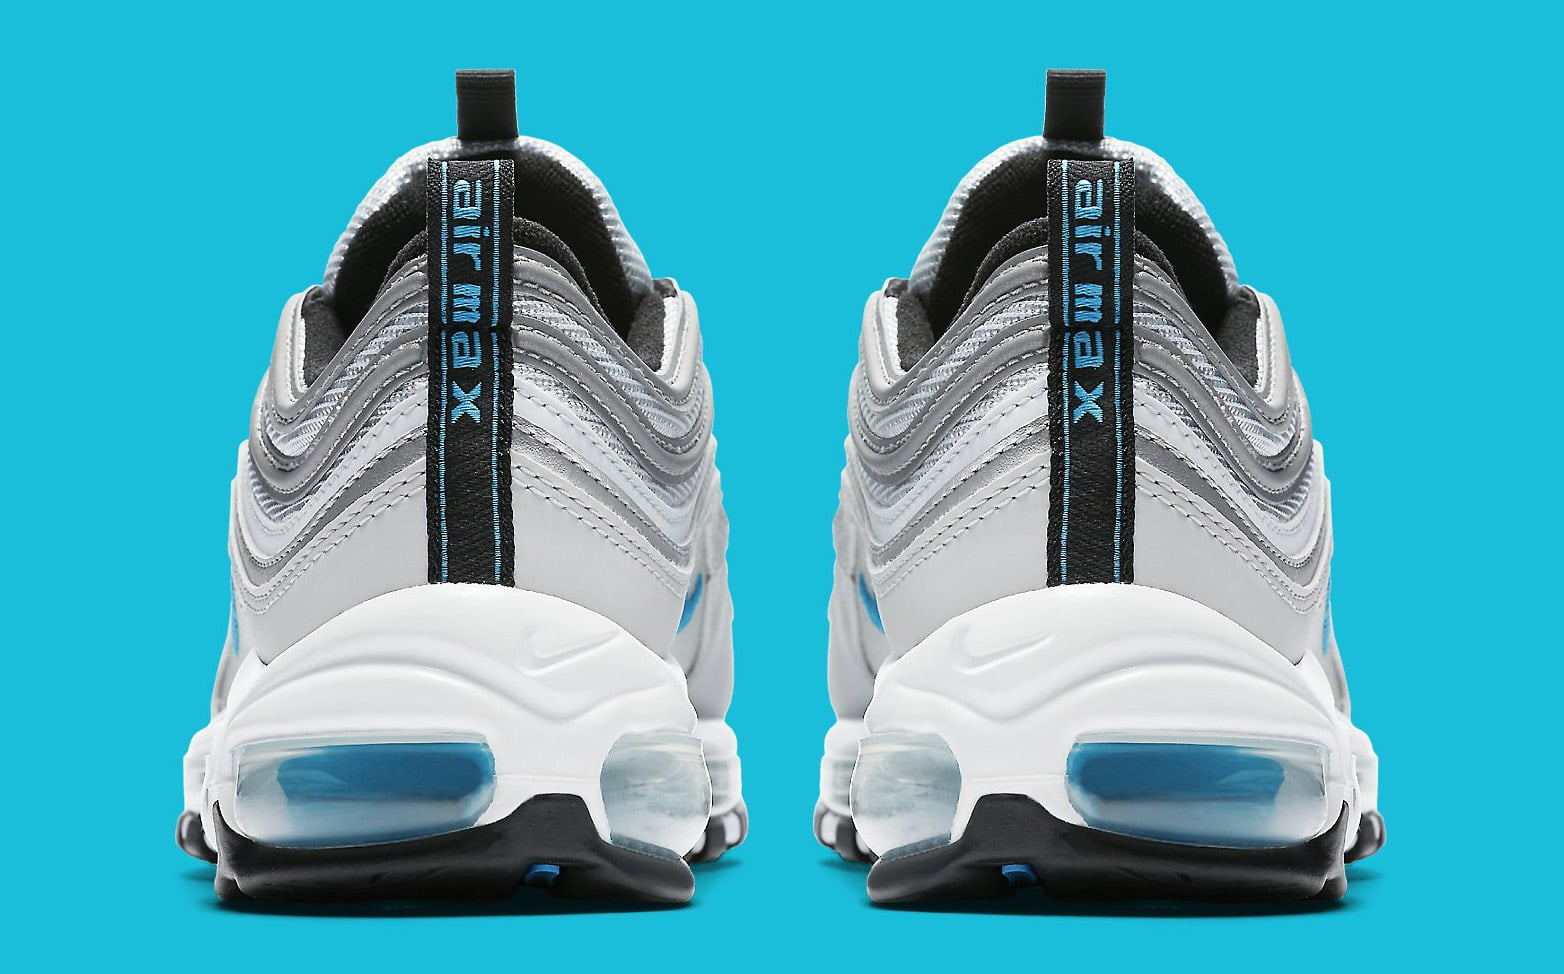 Buy Nike Cheap Air Max 97 Shoes for Womens Sale Online 2018 b53d8c54470f4